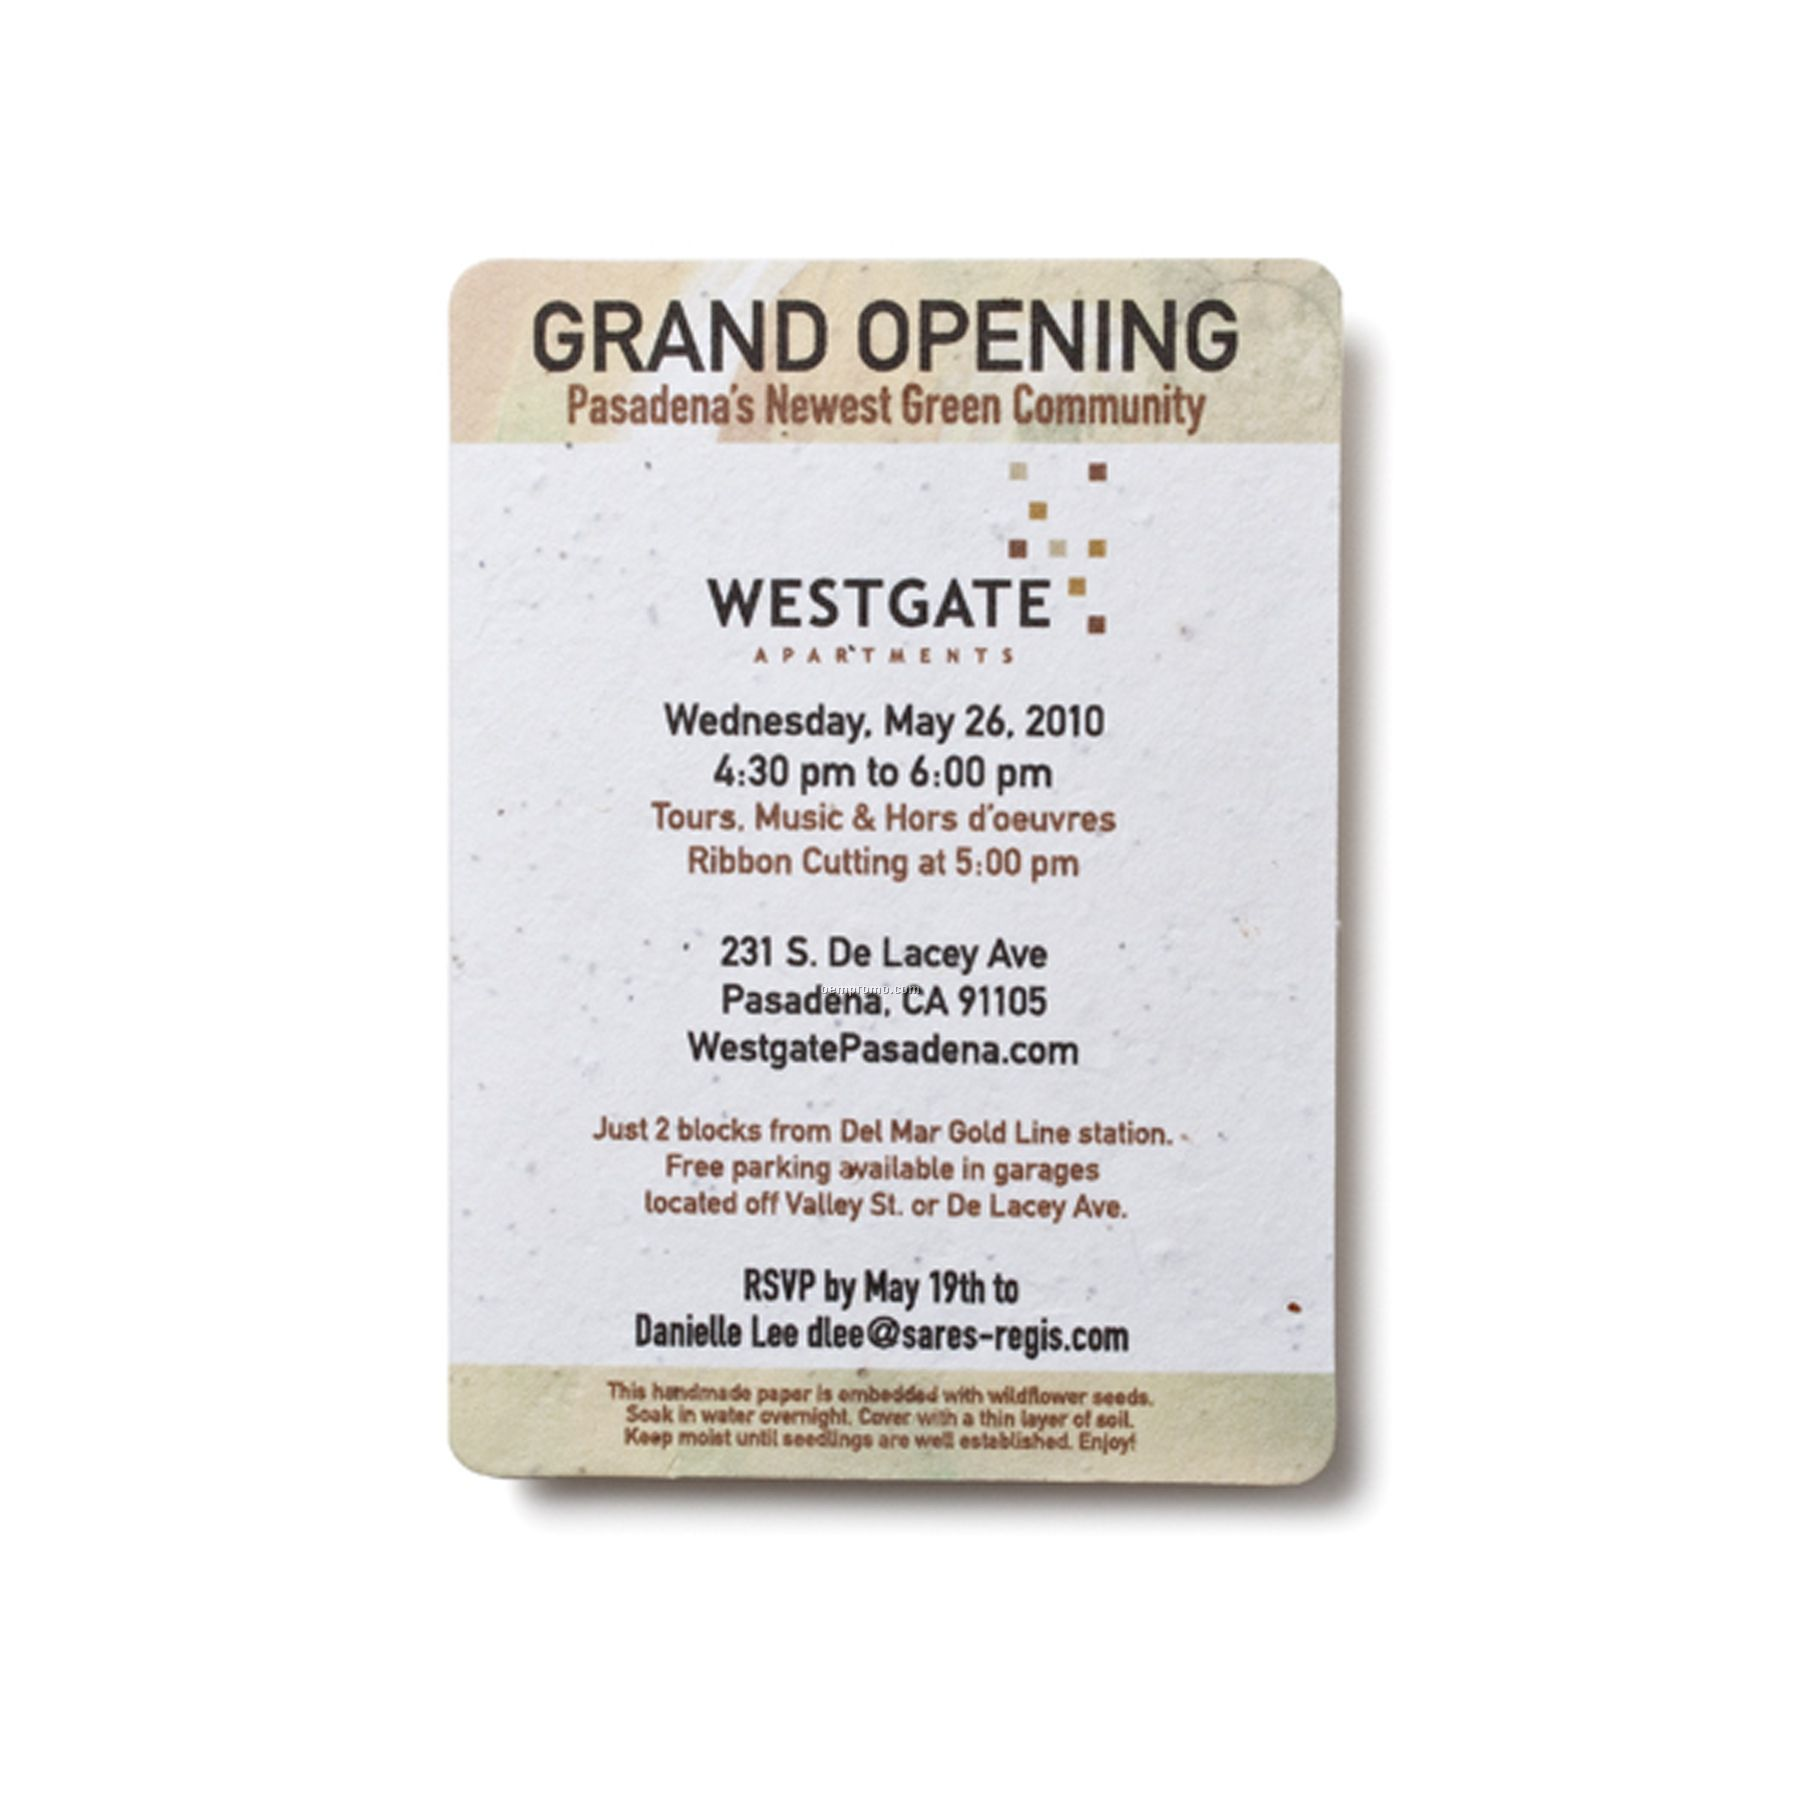 Fully Seeded Invitation With Grand Opening DesignChina Wholesale – Inauguration Invitation Card Sample